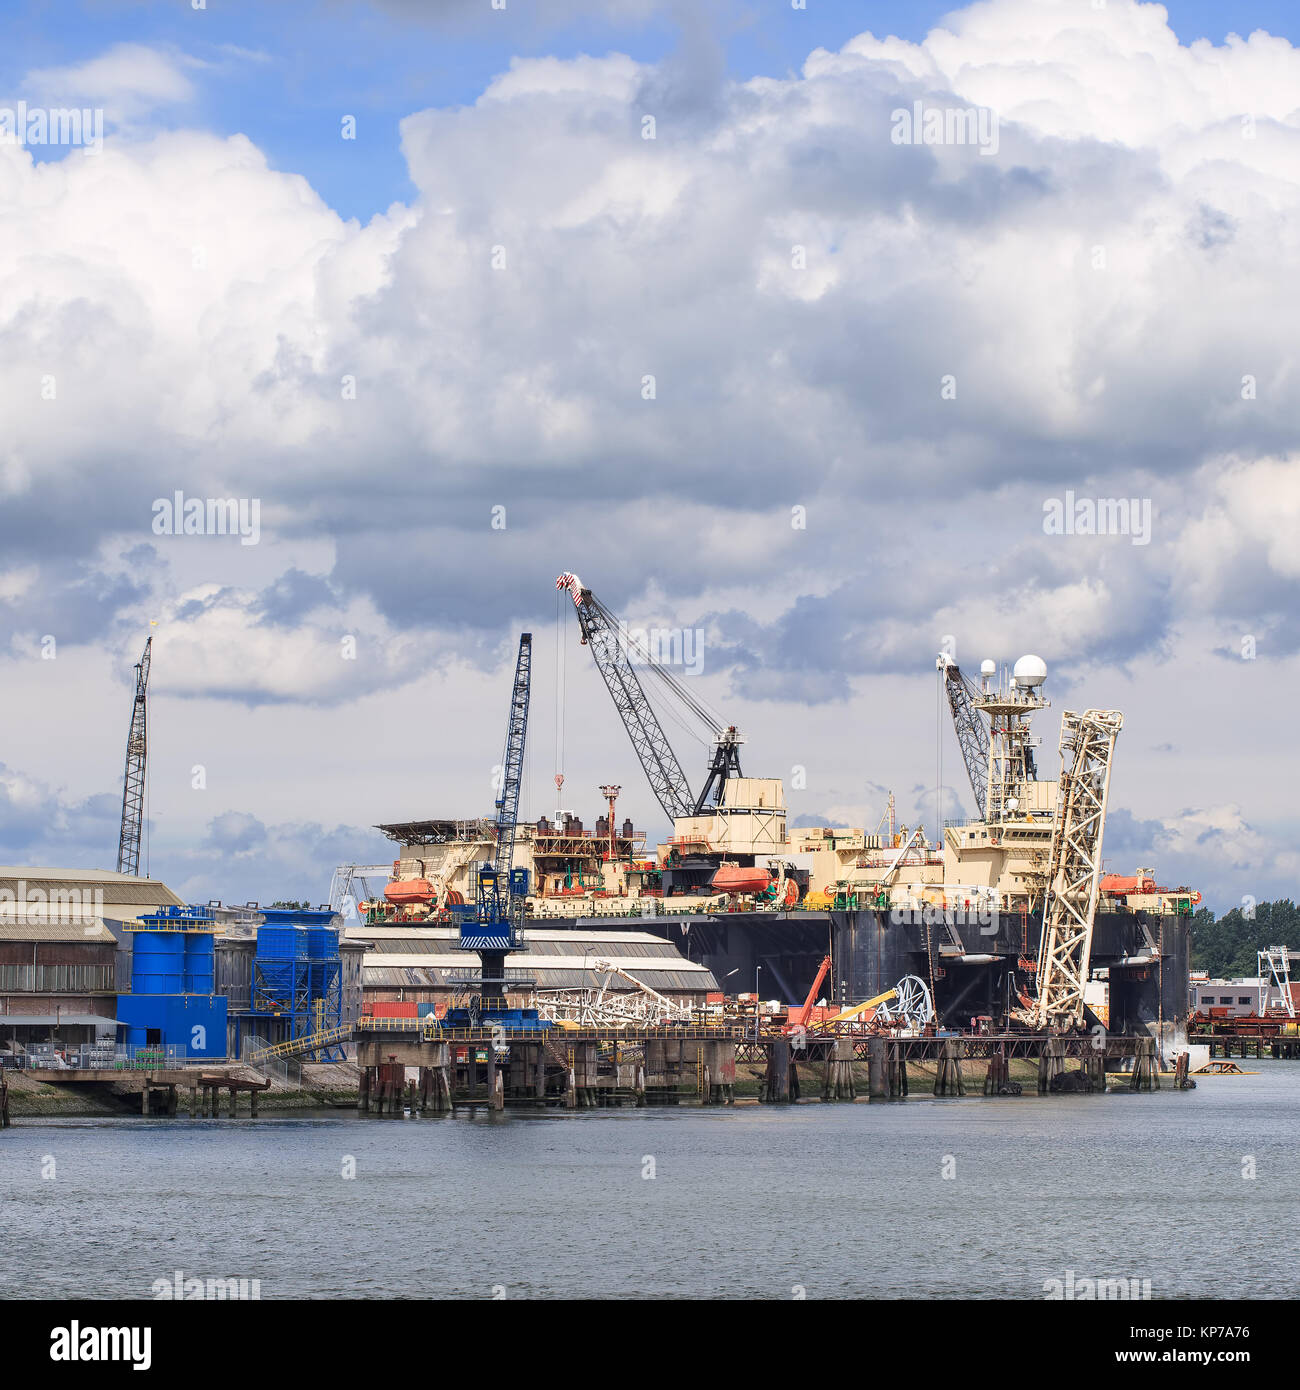 Off-shore vessel in a dock for maintenance work, Port of Rotterdam, The Netherlands - Stock Image